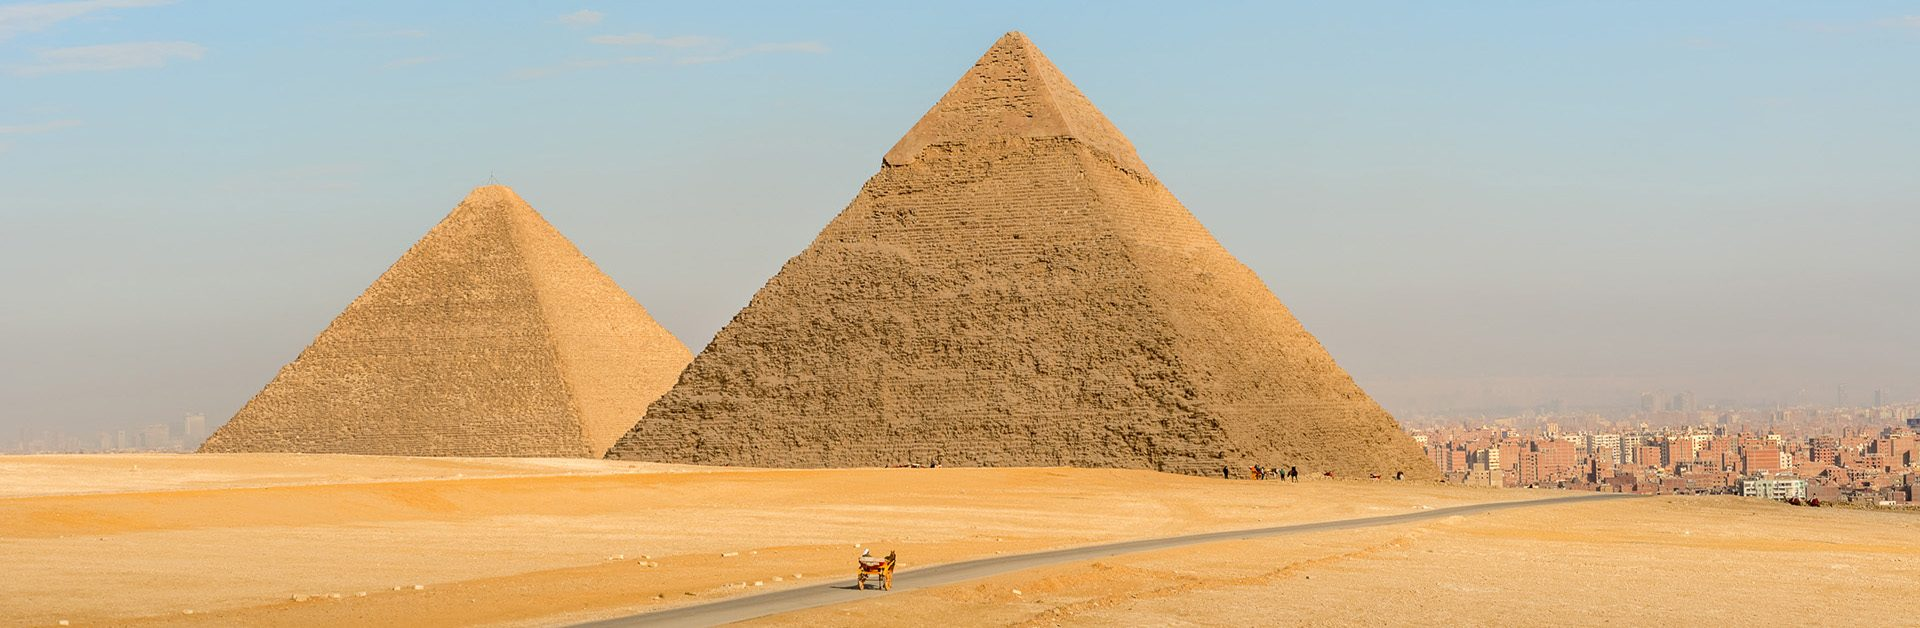 Landscape view at the  Pyramids of Giza and Cairo at the background